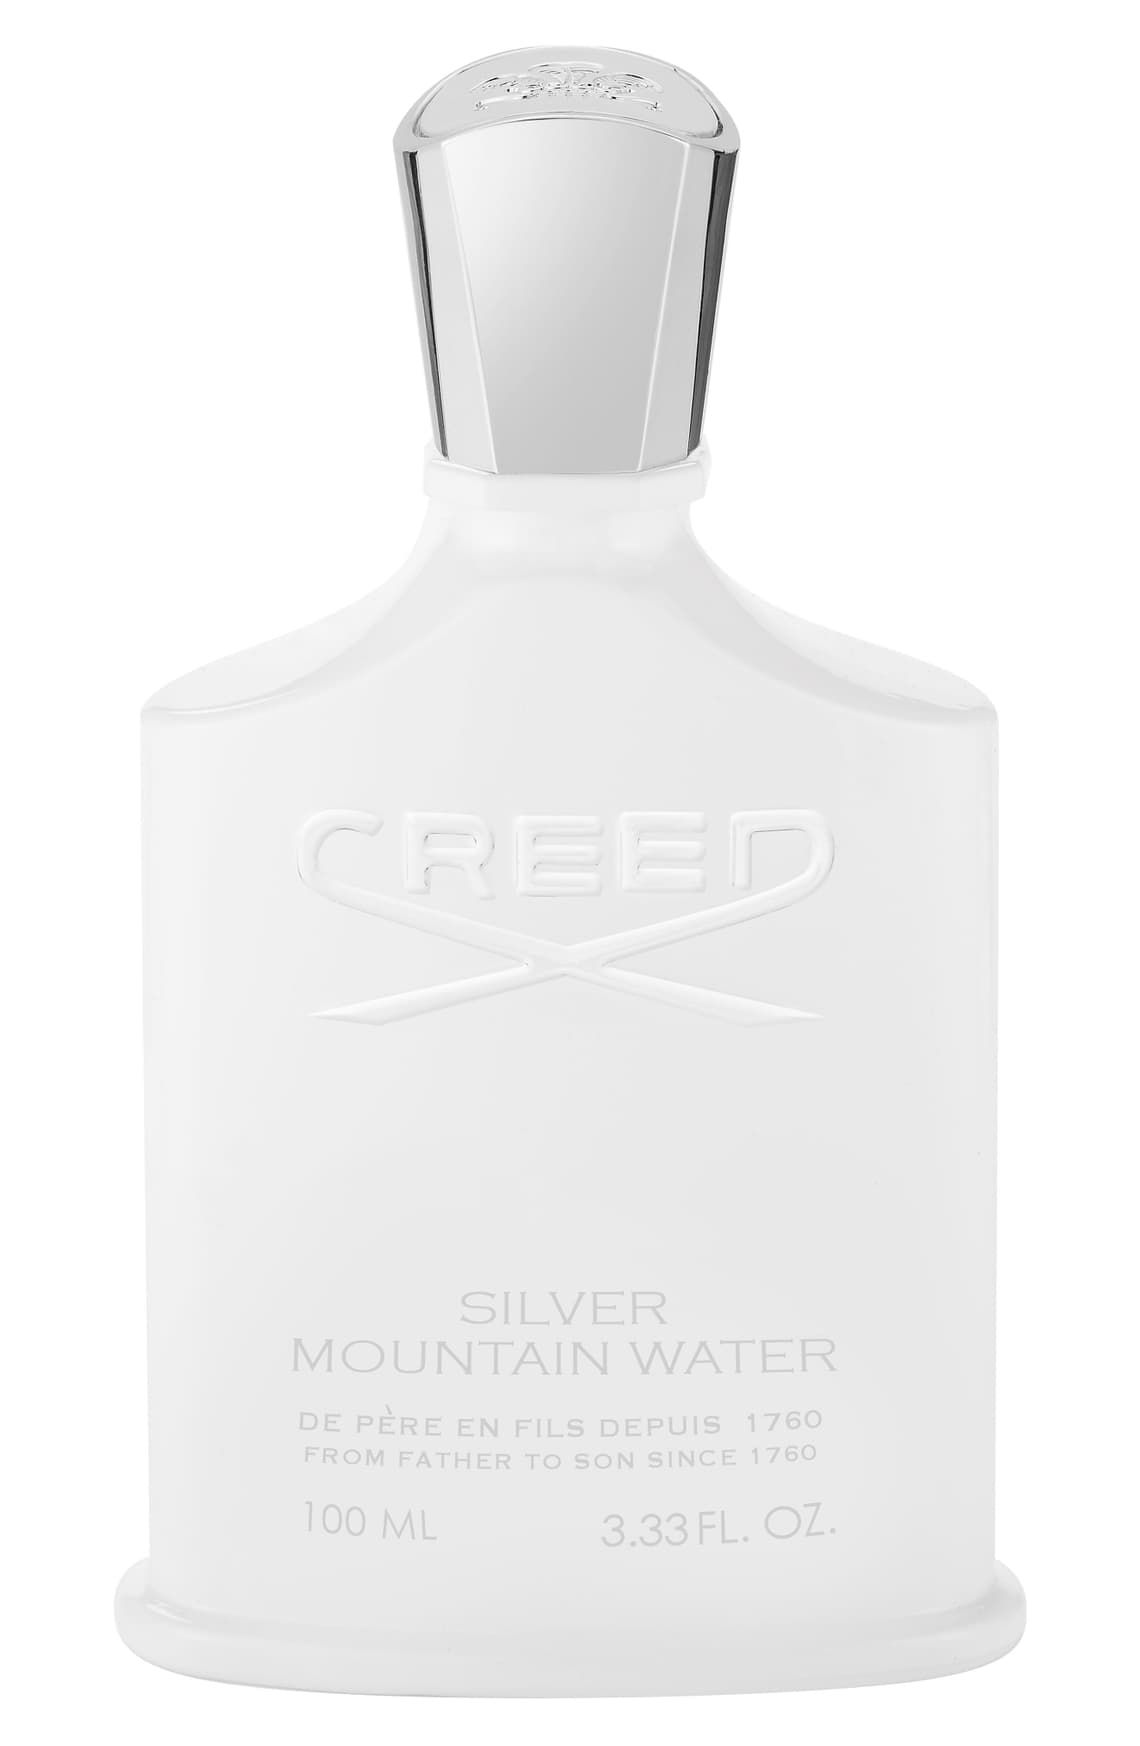 Creed Silver Mountain Water Fragrance Nordstrom In 2020 Fragrance Creed Cologne Perfume